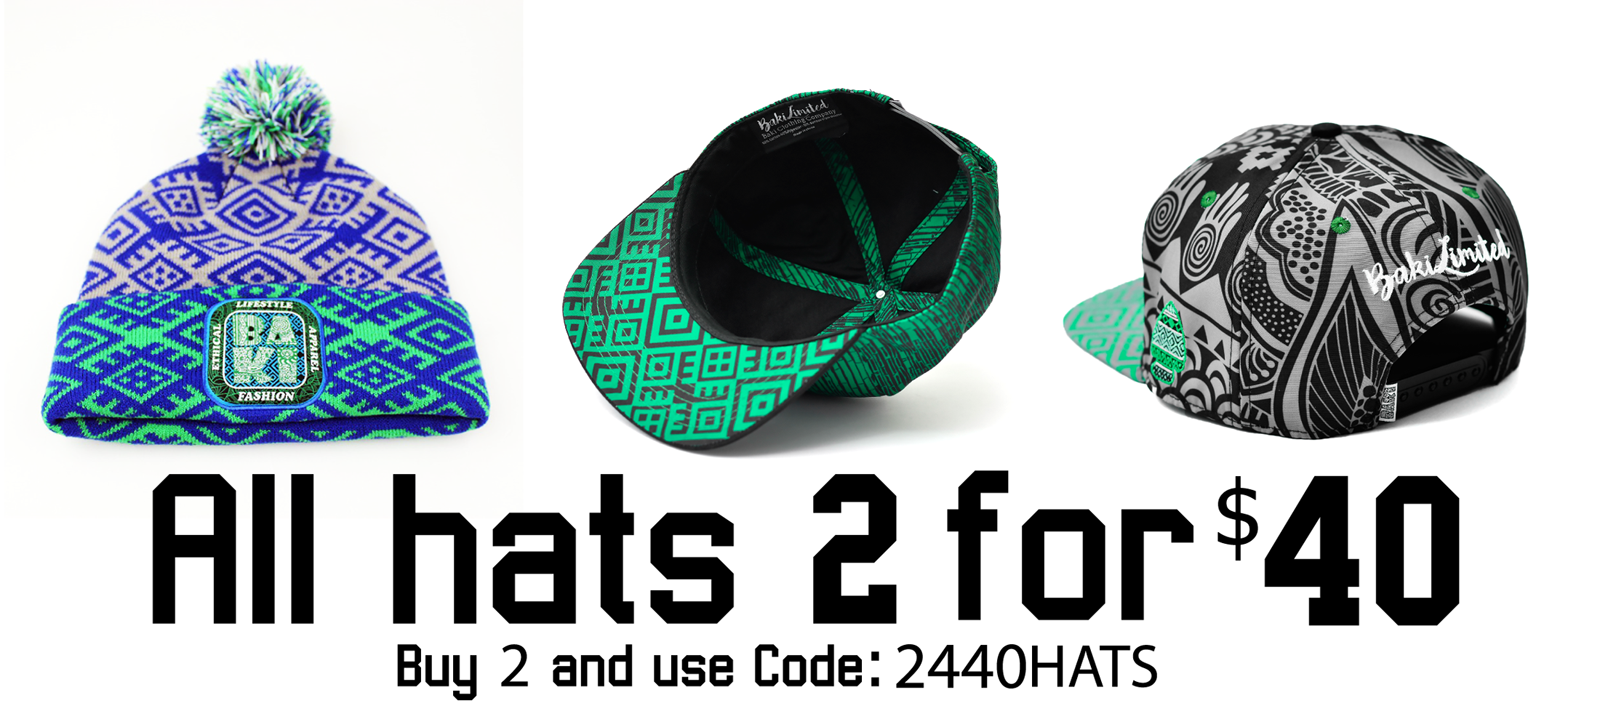 Limited Time Offer-All Hats 2 for $40 + Free Shipping